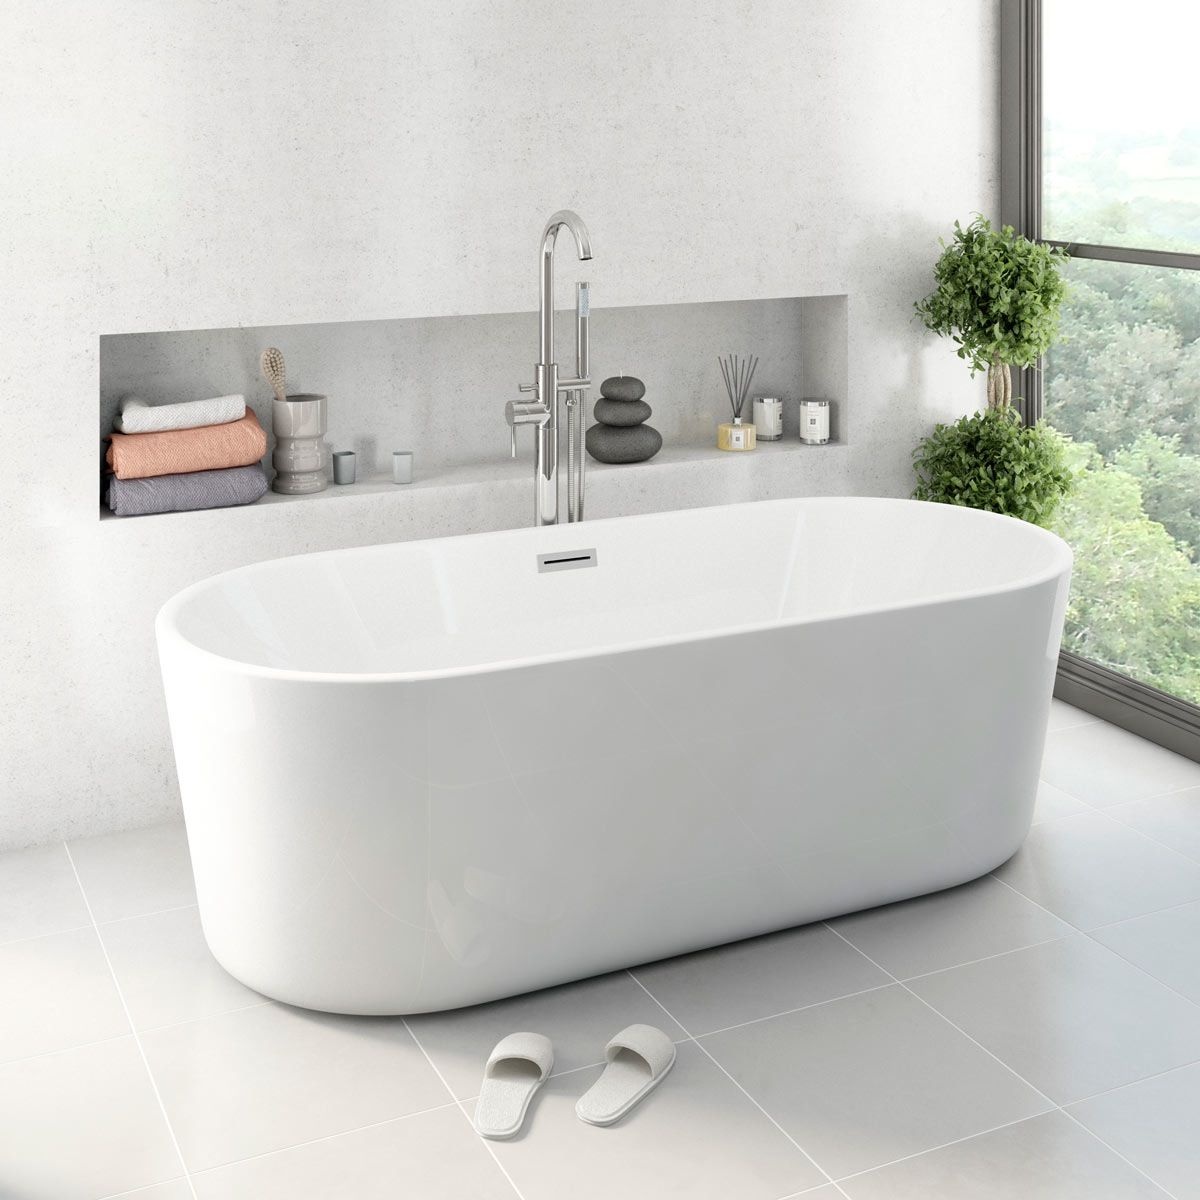 mode arte freestanding bath 1500 x 700 offer pack freestanding mode arte freestanding bath 1500 x 700 offer pack